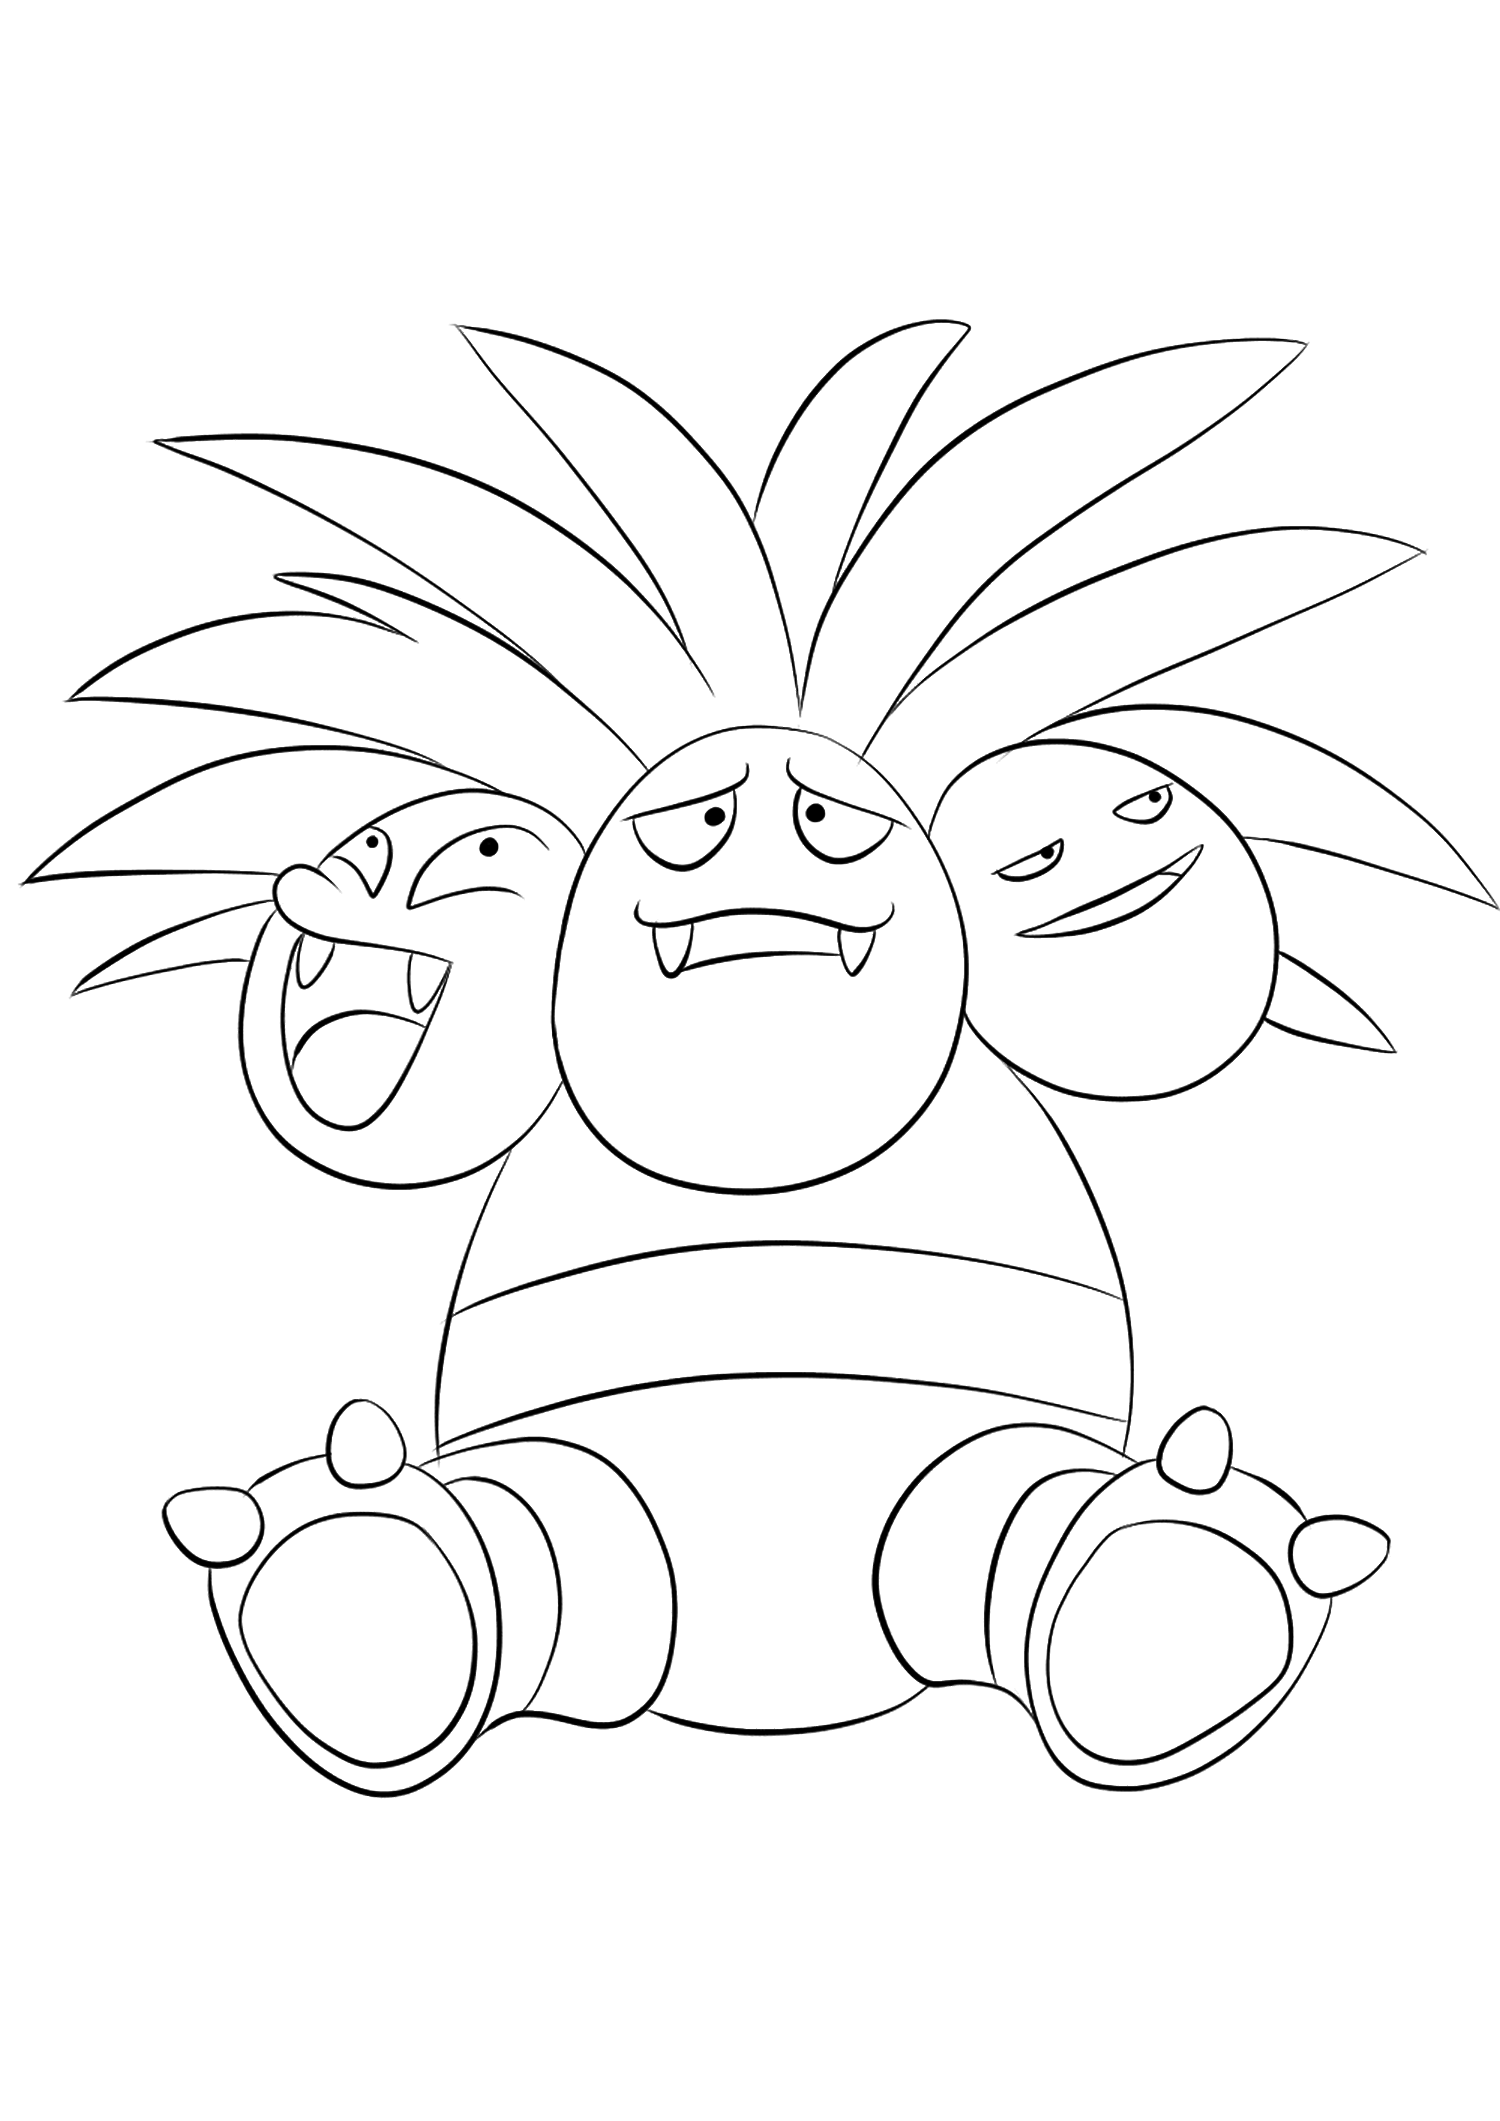 Exeggutor (No.103)Exeggutor Coloring page, Generation I Pokemon of type Grass and DragonOriginal image credit: Pokemon linearts by Lilly Gerbil on Deviantart.Permission:  All rights reserved © Pokemon company and Ken Sugimori.